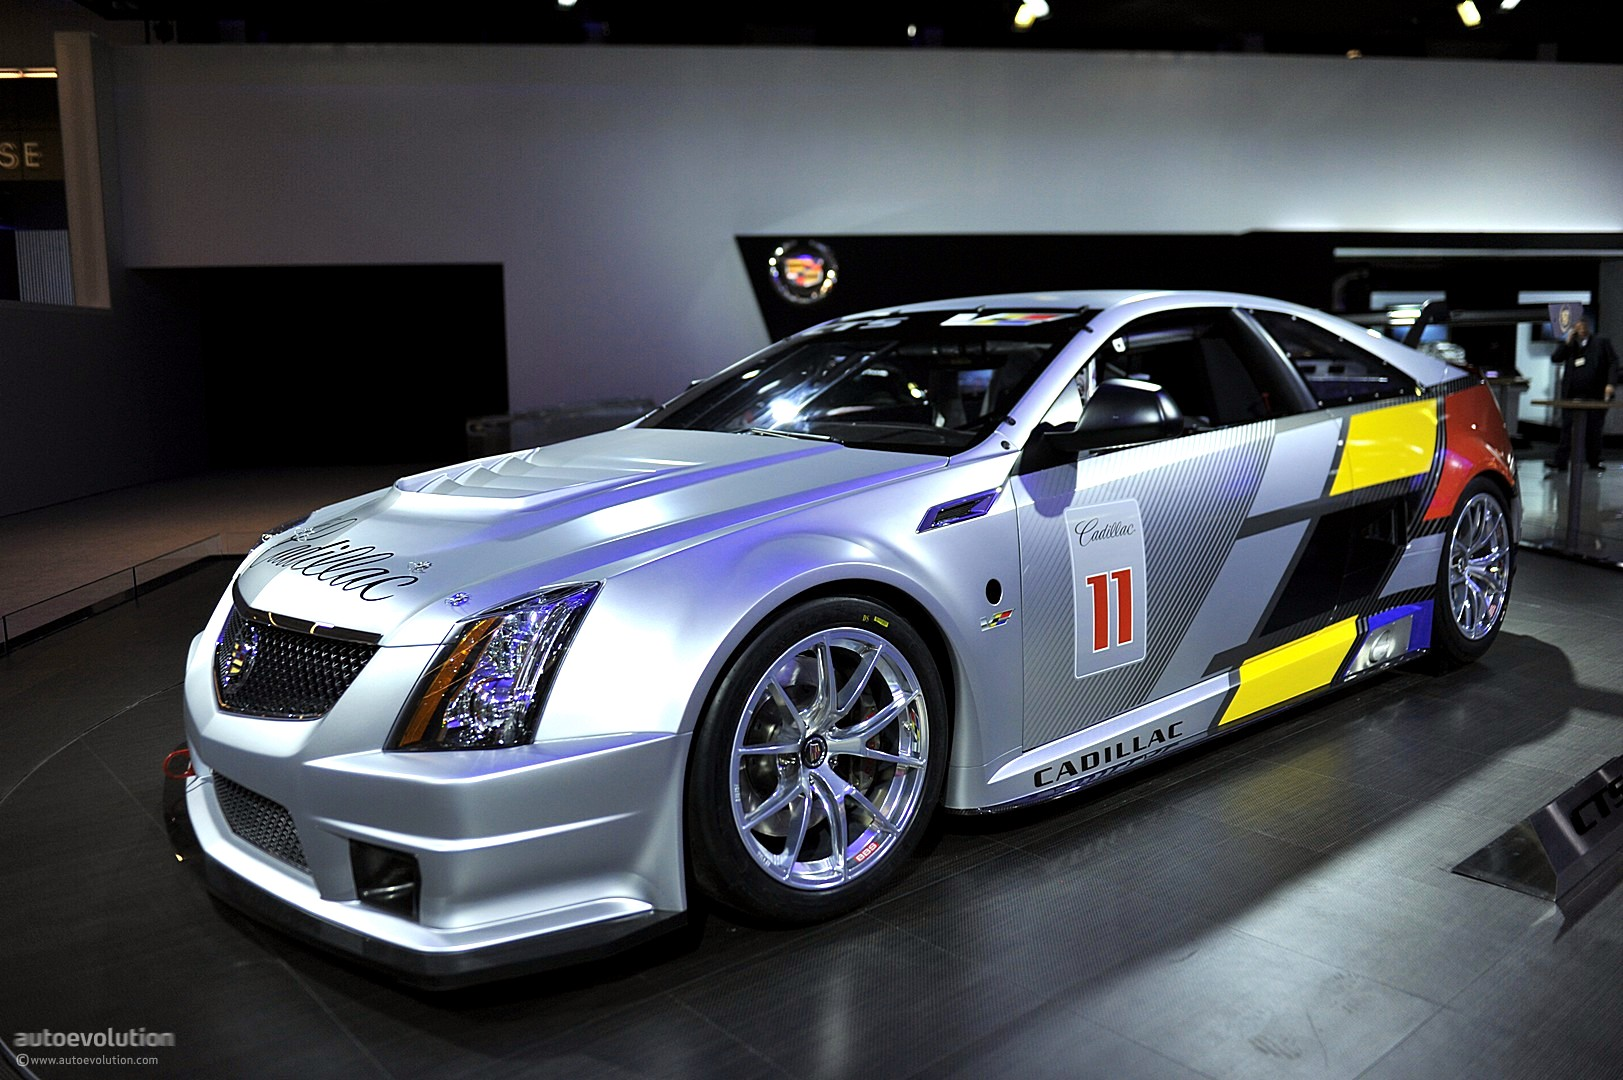 Used Cadillac Cts Coupe >> NYIAS 2011: Cadillac CTS-V Race Car [Live Photos ...